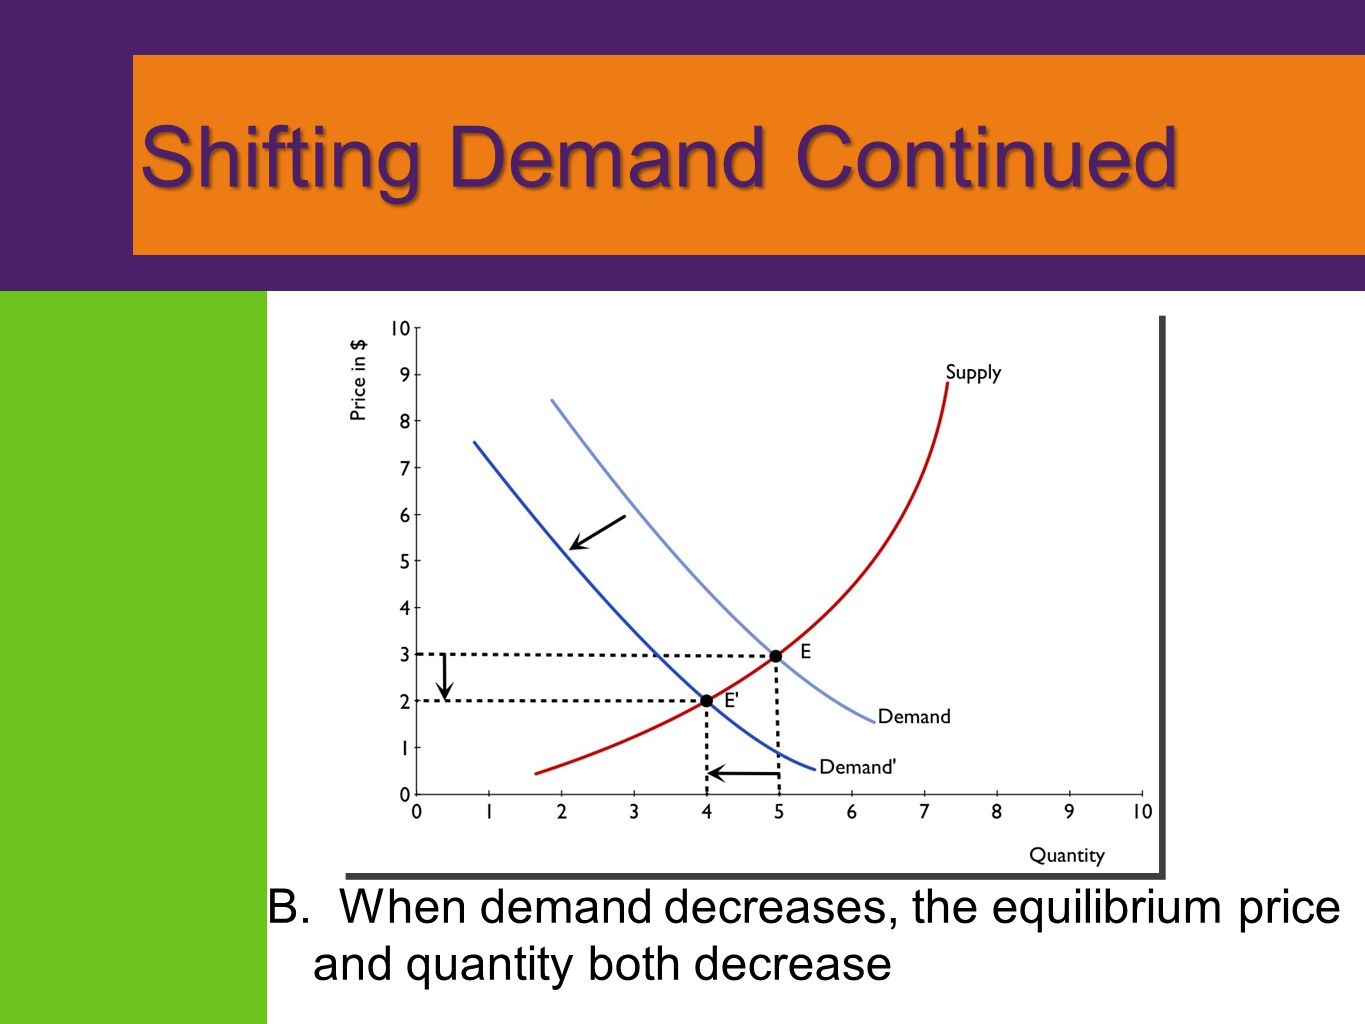 Shifting Demand Continued B. When demand decreases, the equilibrium price and quantity both decrease